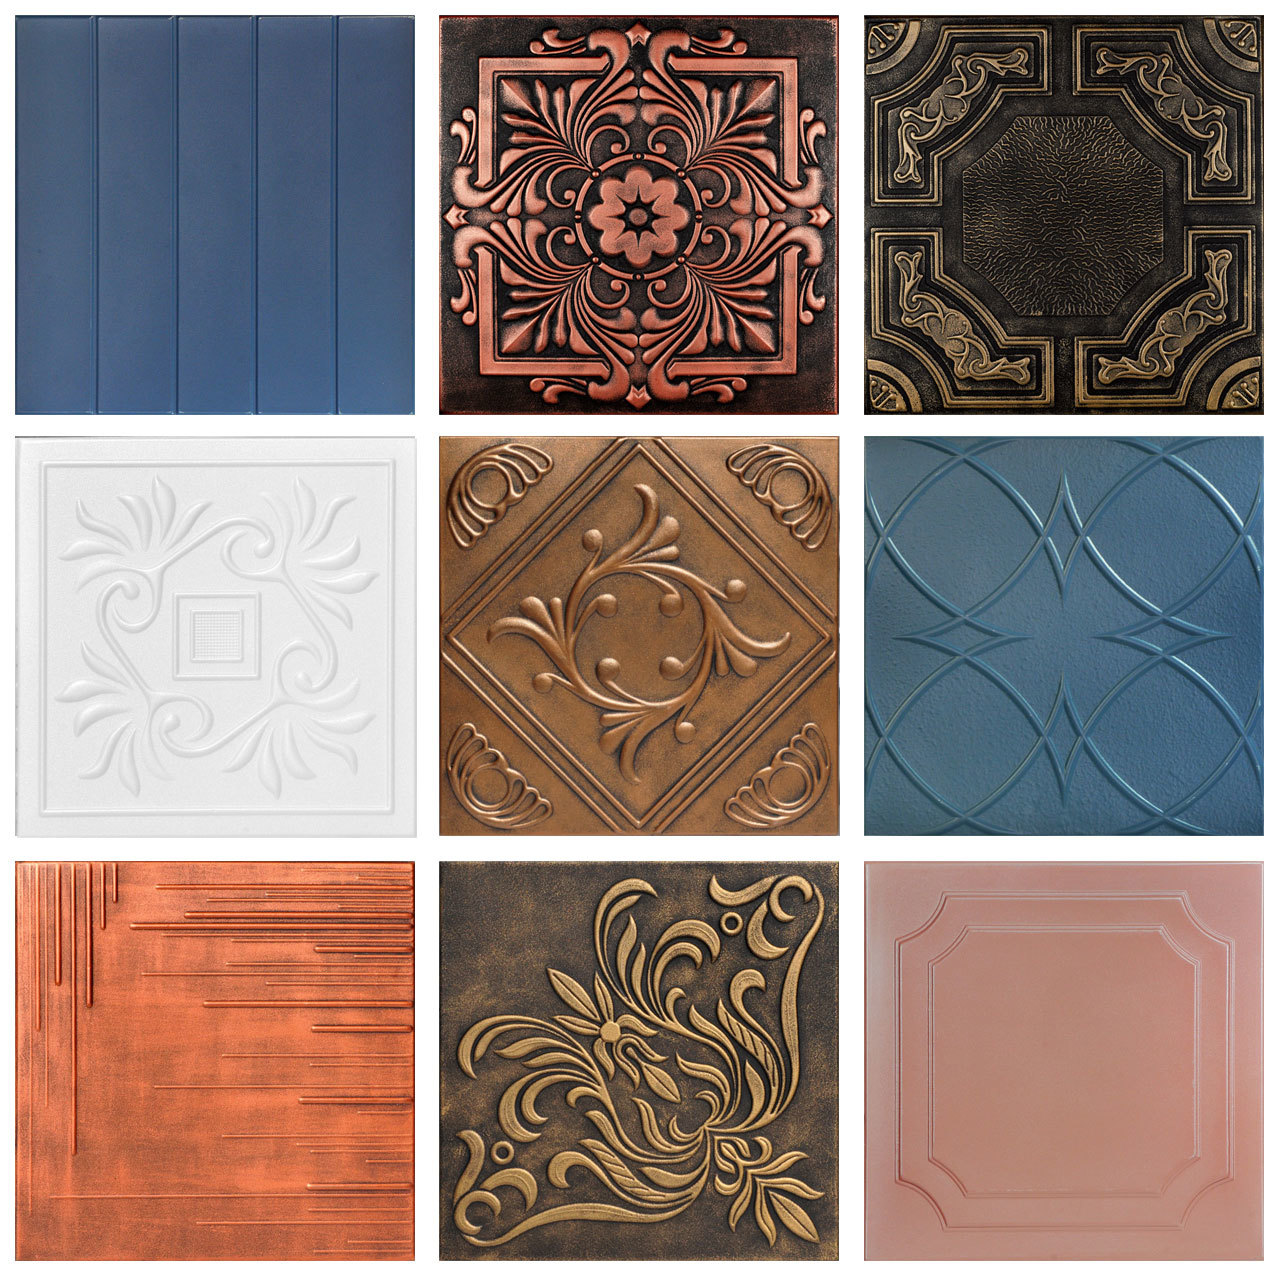 3 Full Hand-Painted Styrofoam Tiles Sample Pack